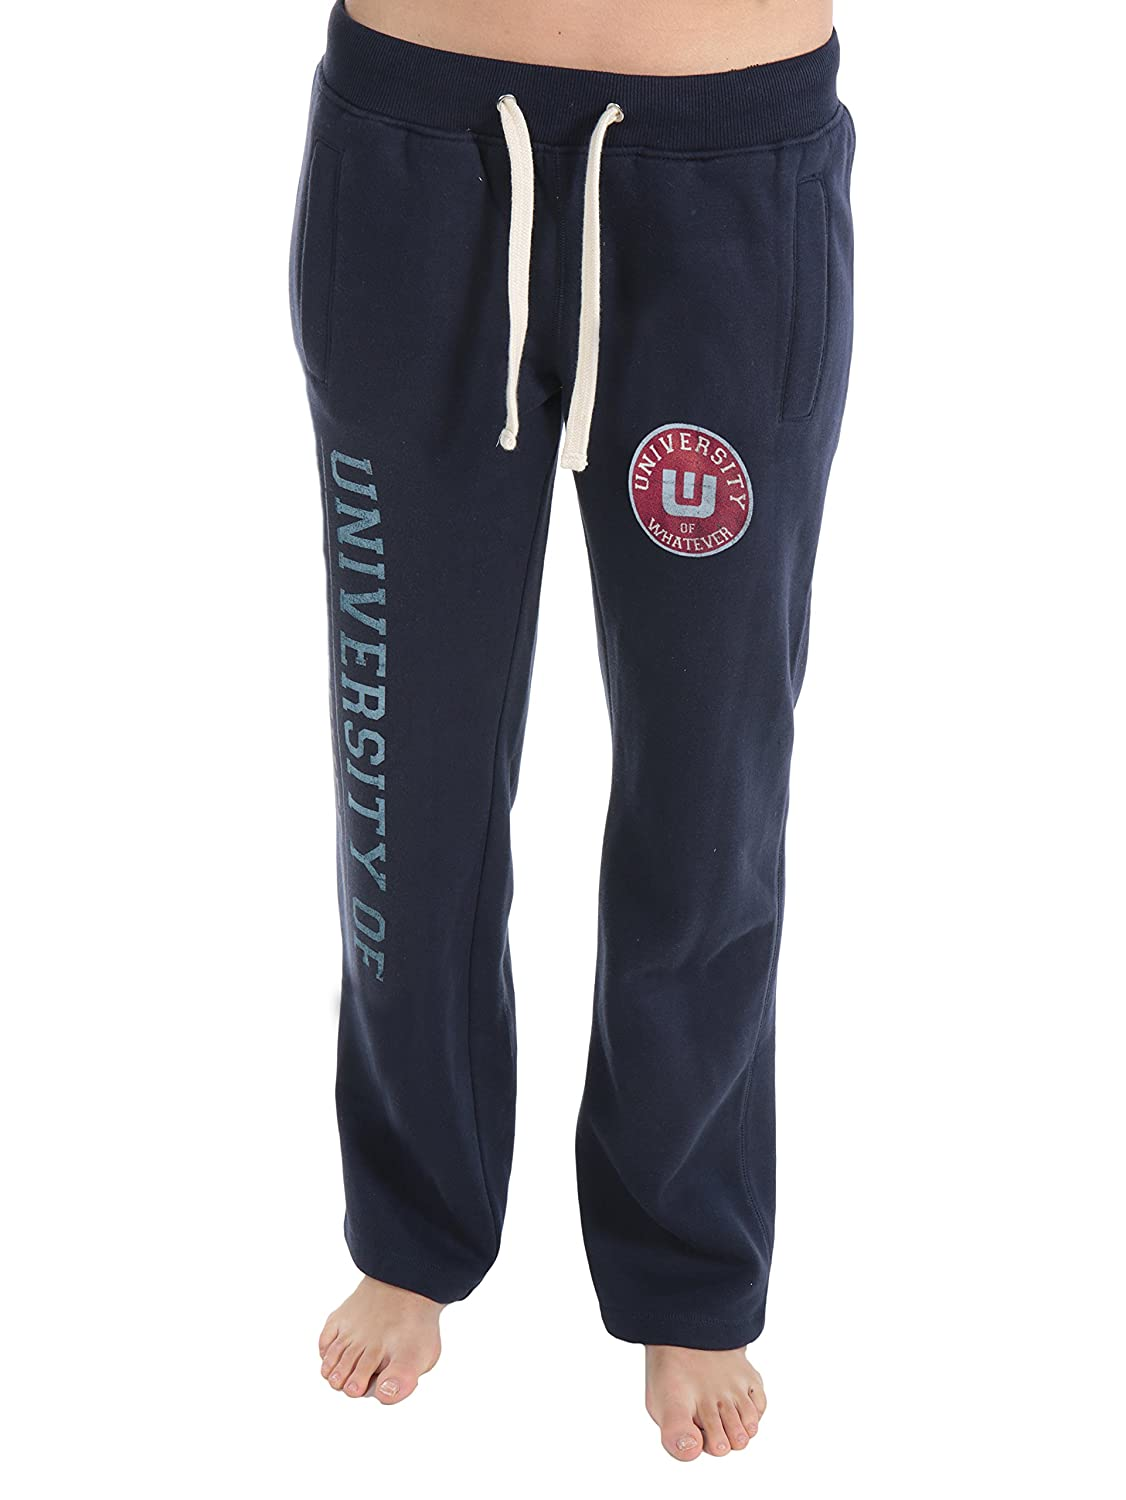 University of Whatever Varsity Womens Sweatpants 3 colours